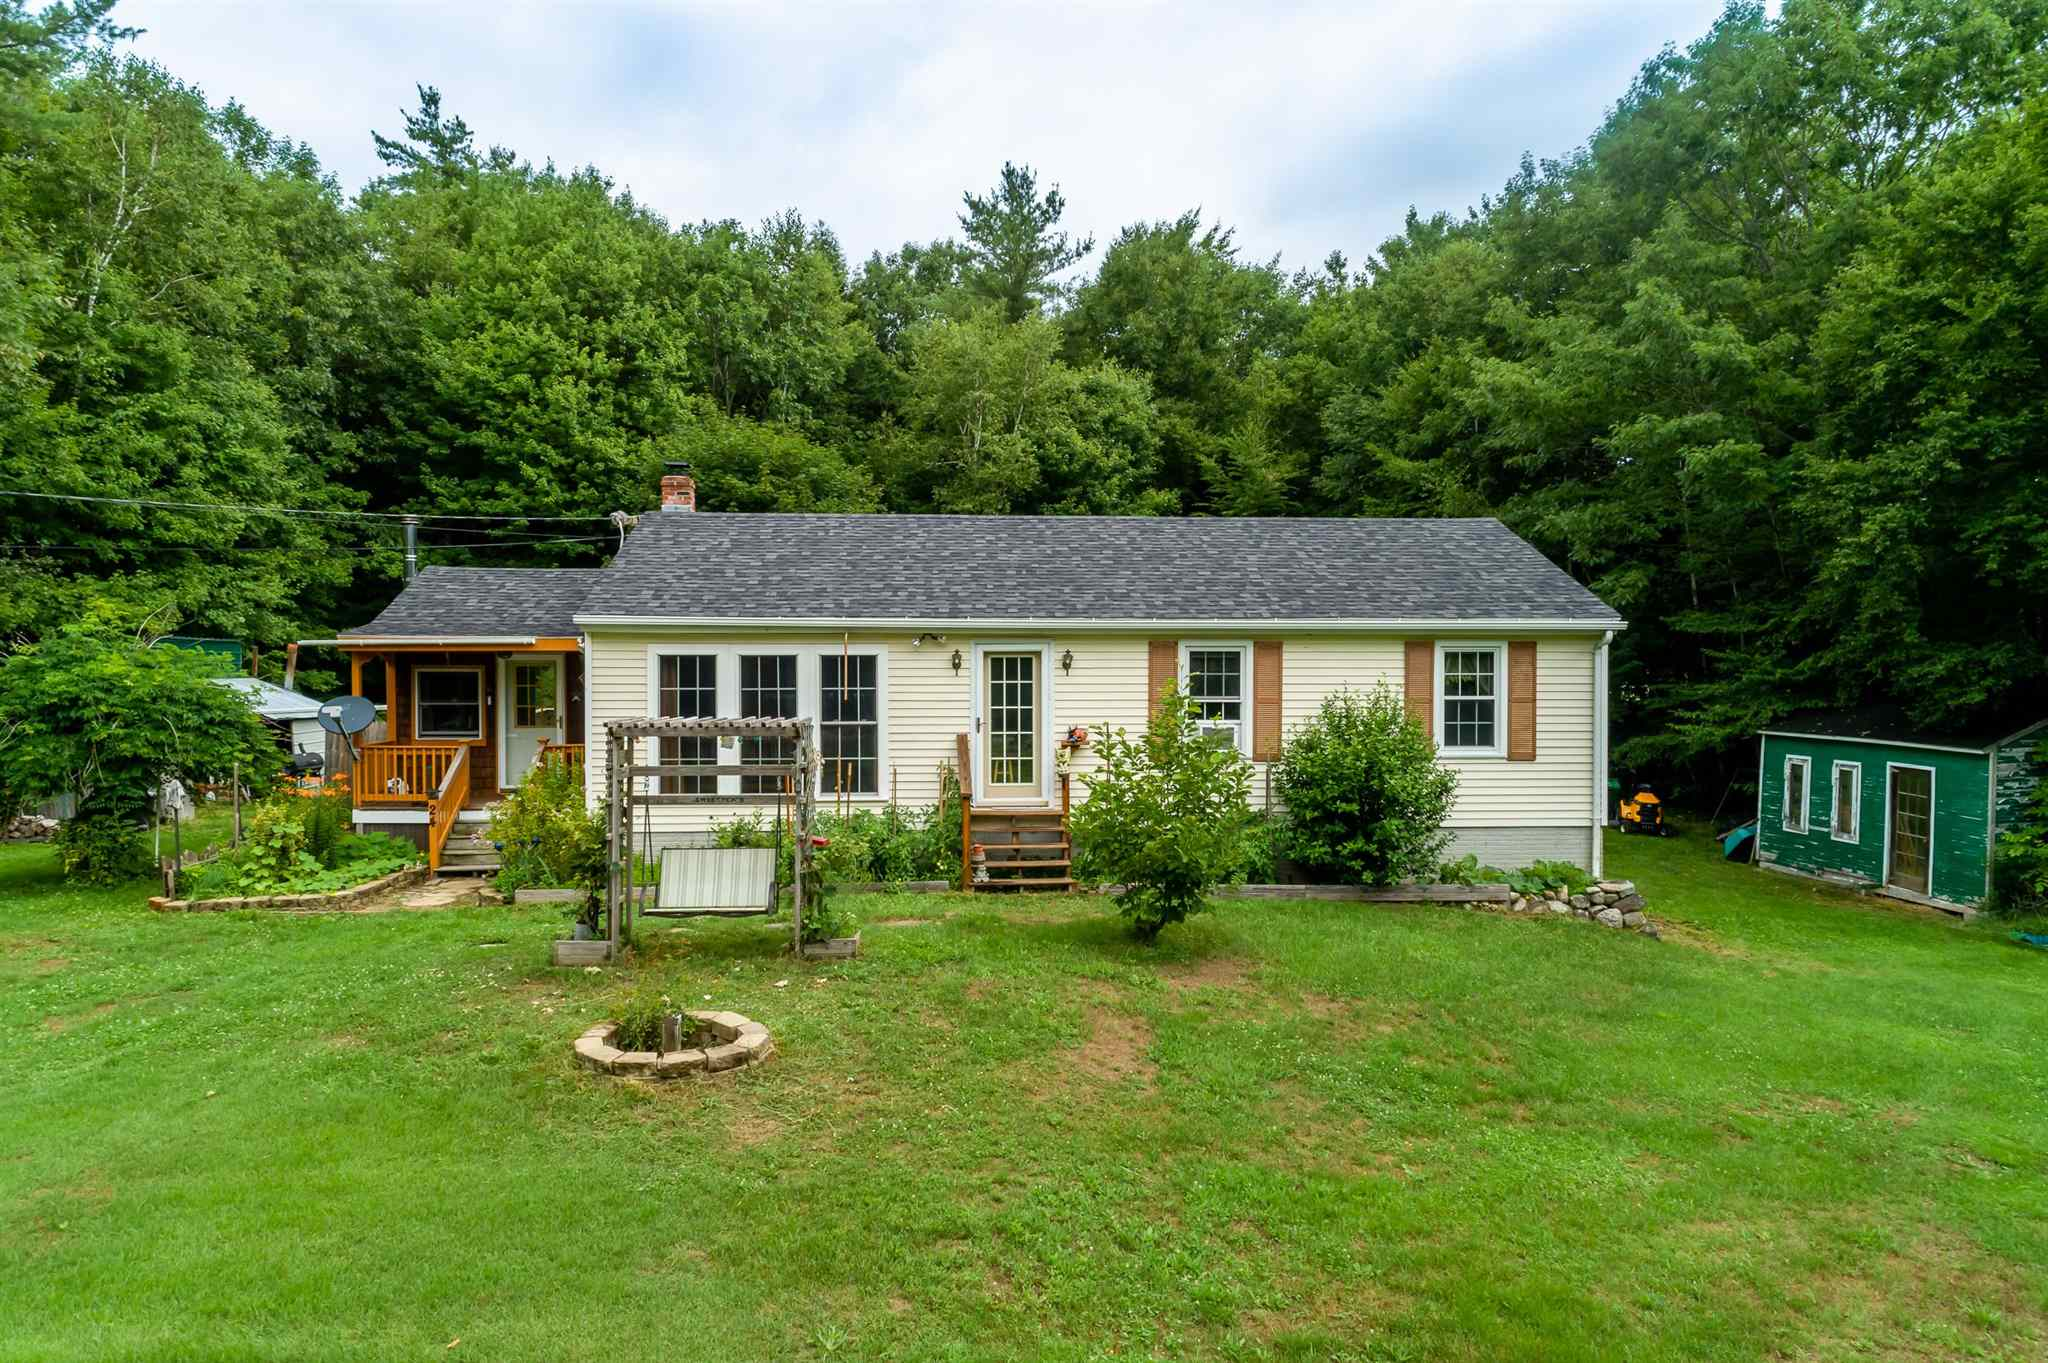 MLS 4818663: 24 Westminster Drive, Fitzwilliam NH